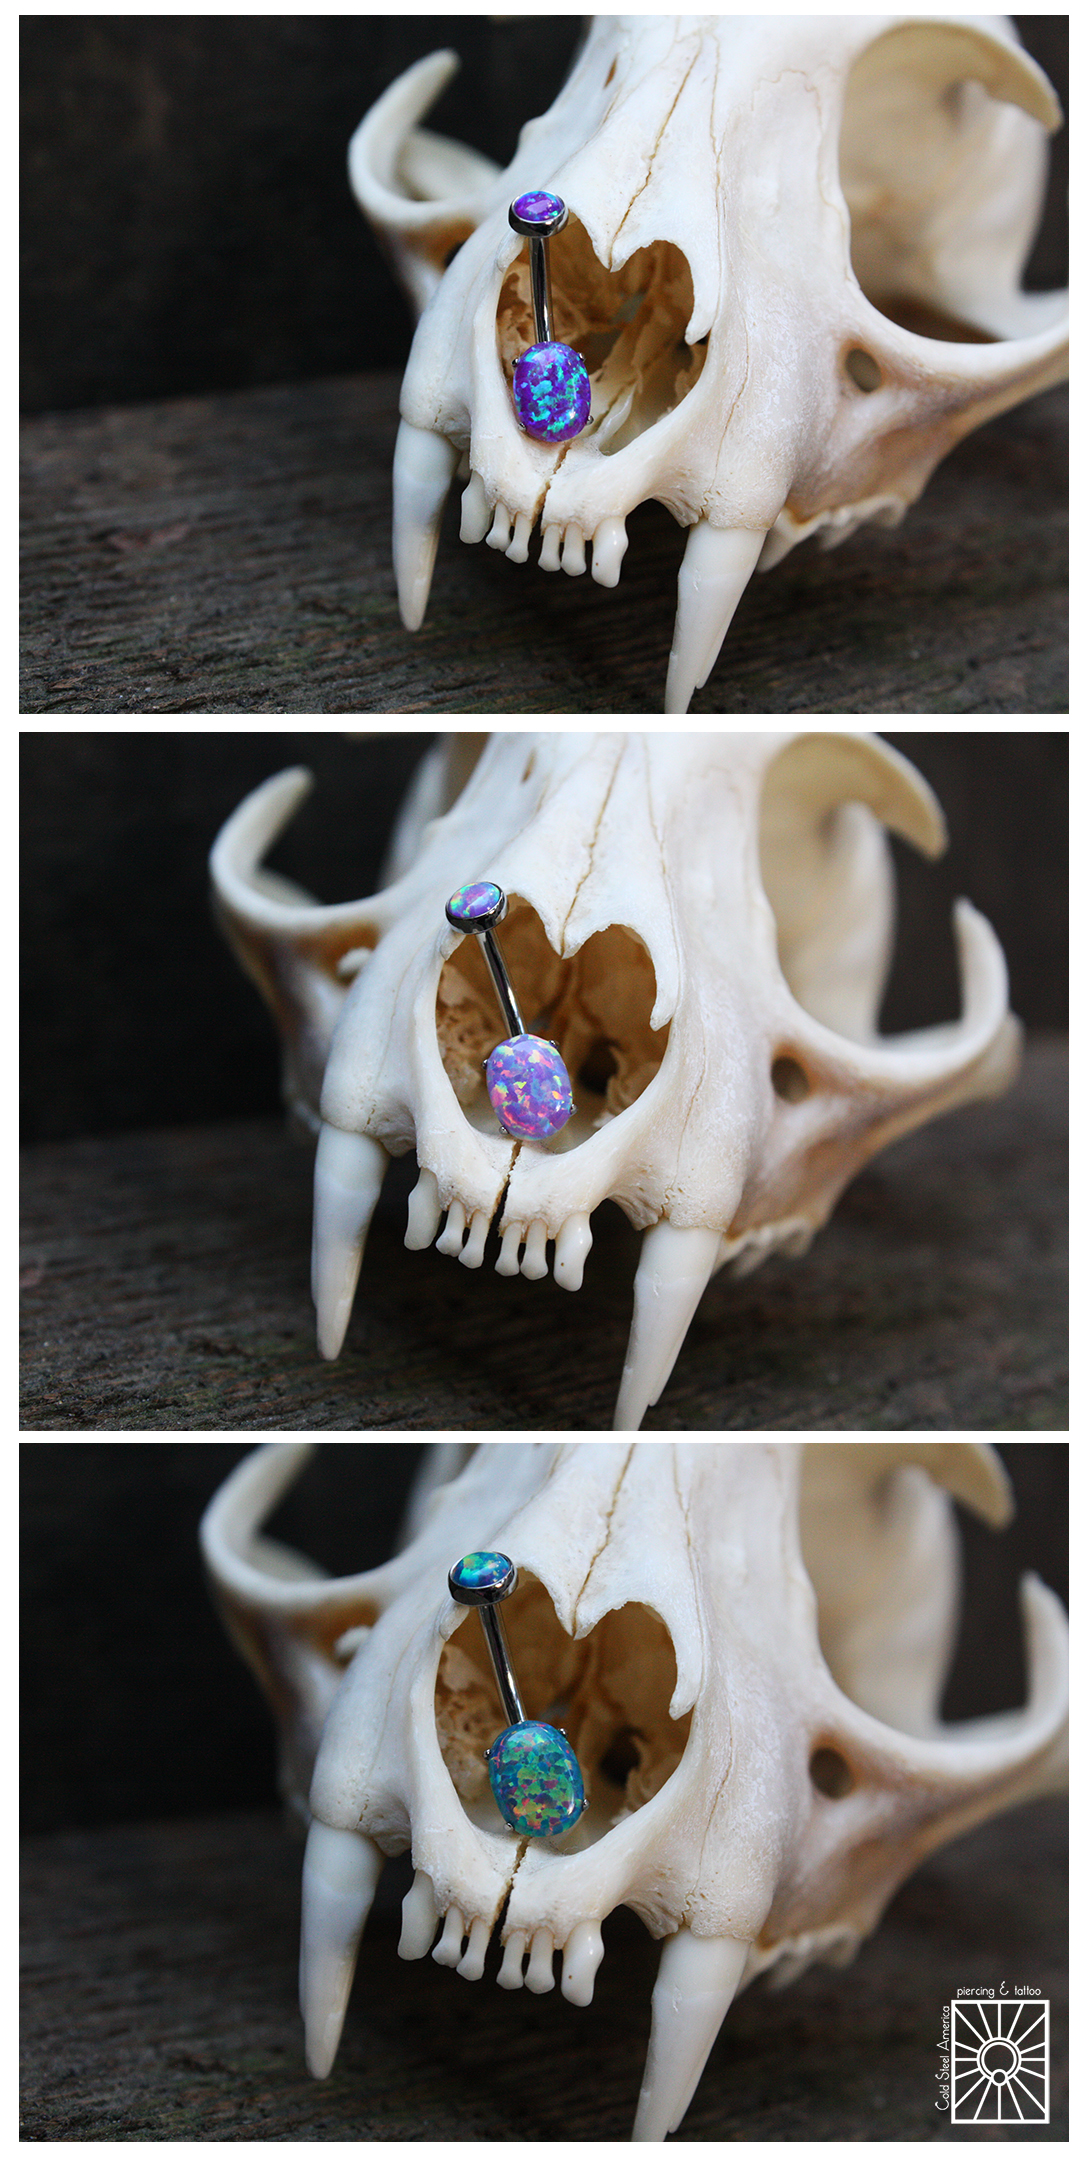 Titanium navel curves with oval-cut synthetic Purple, Lavender, and Teal Opals from Anatometal.